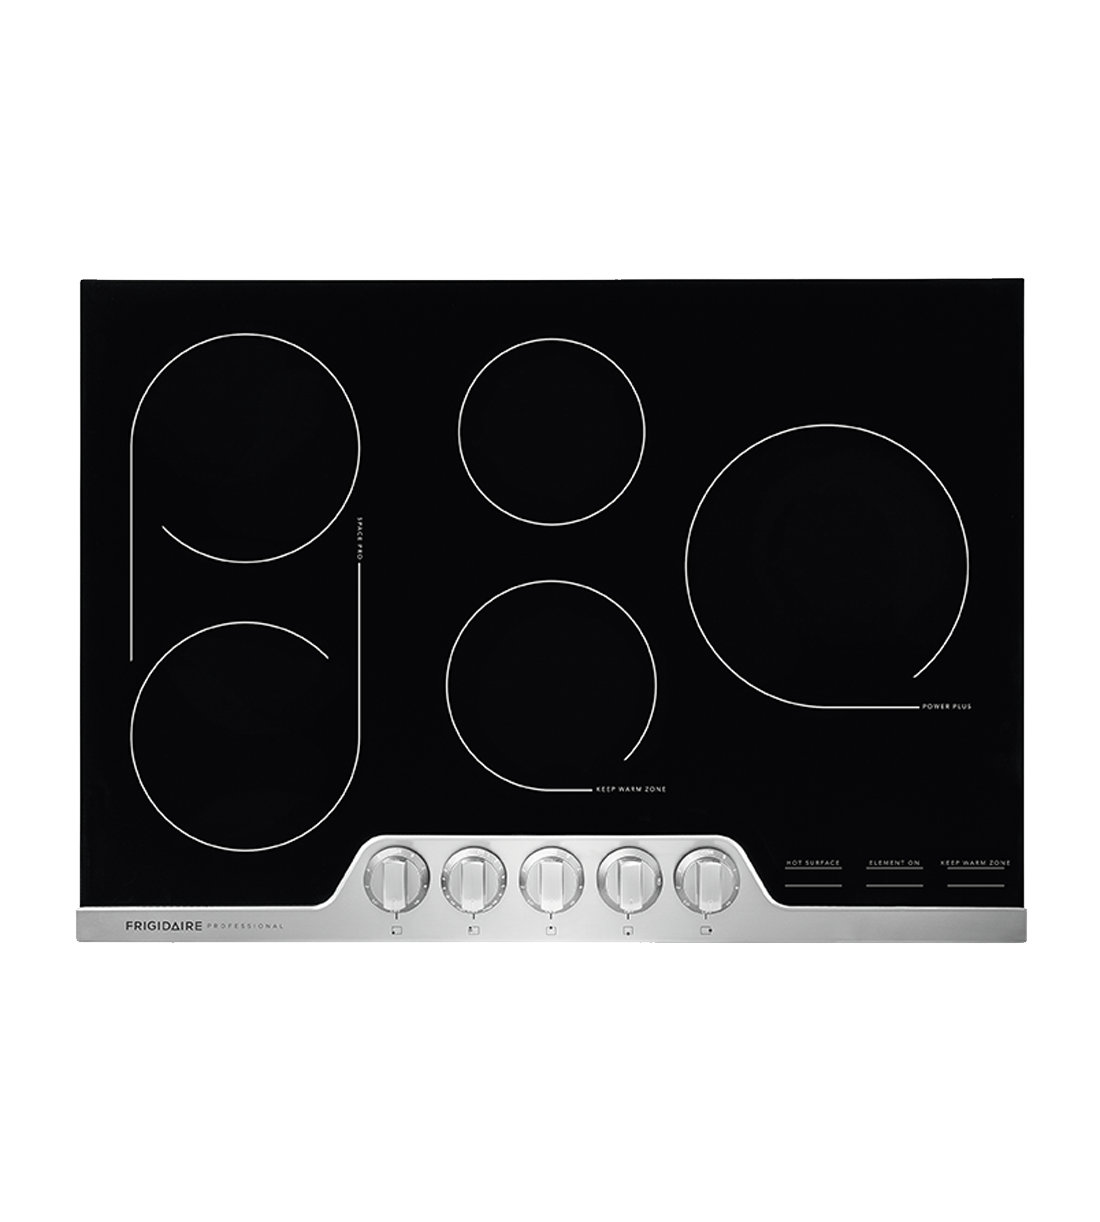 Frigidaire Professional Cooktop